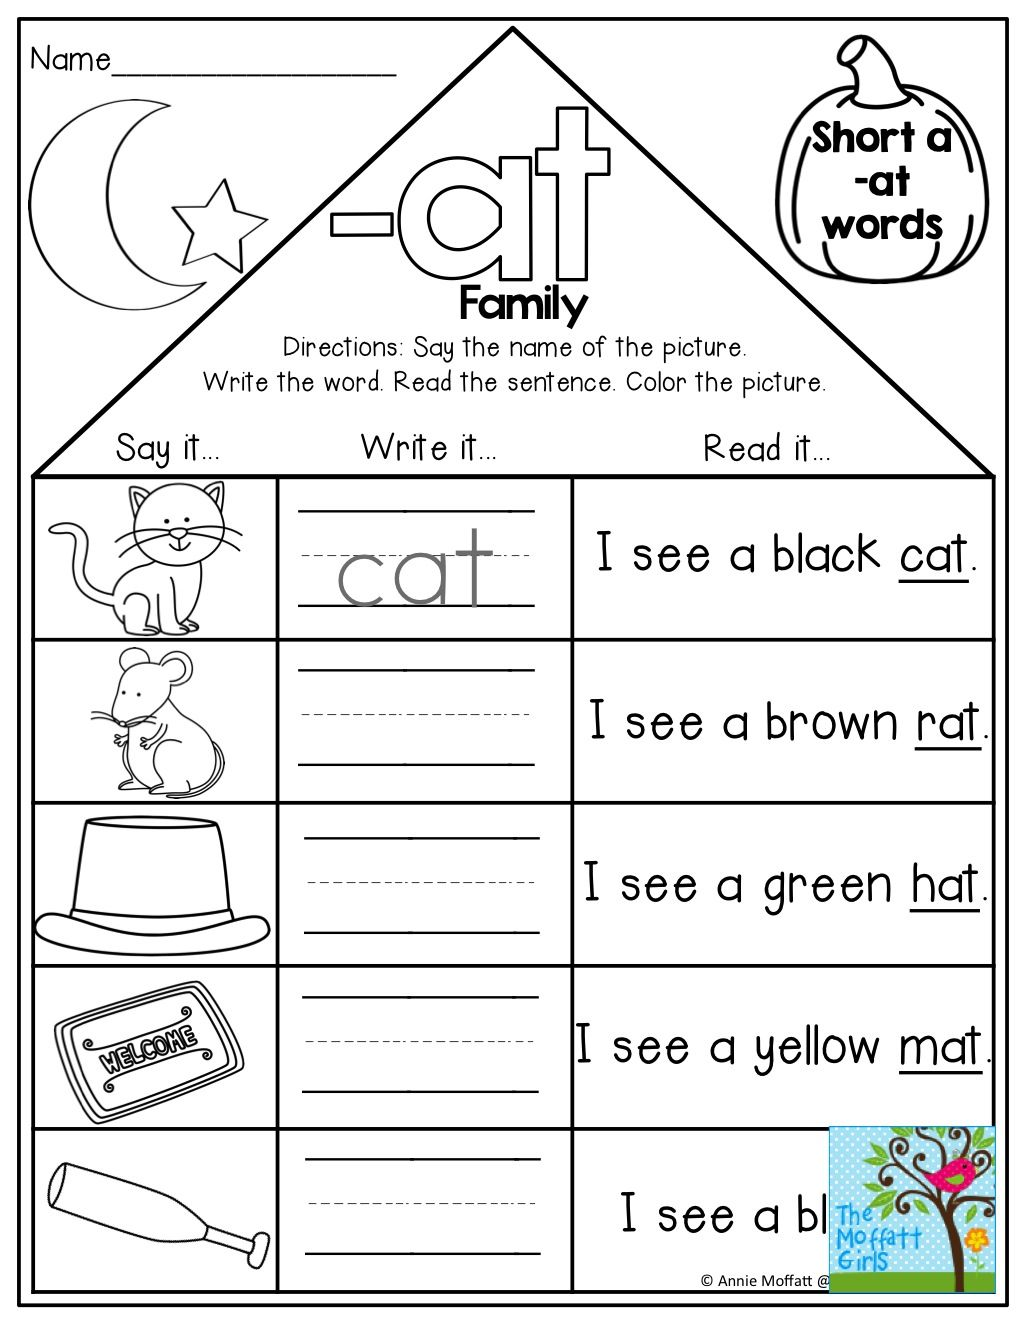 Worksheet Am Word Family Worksheets Worksheet Fun Worksheet Study Site